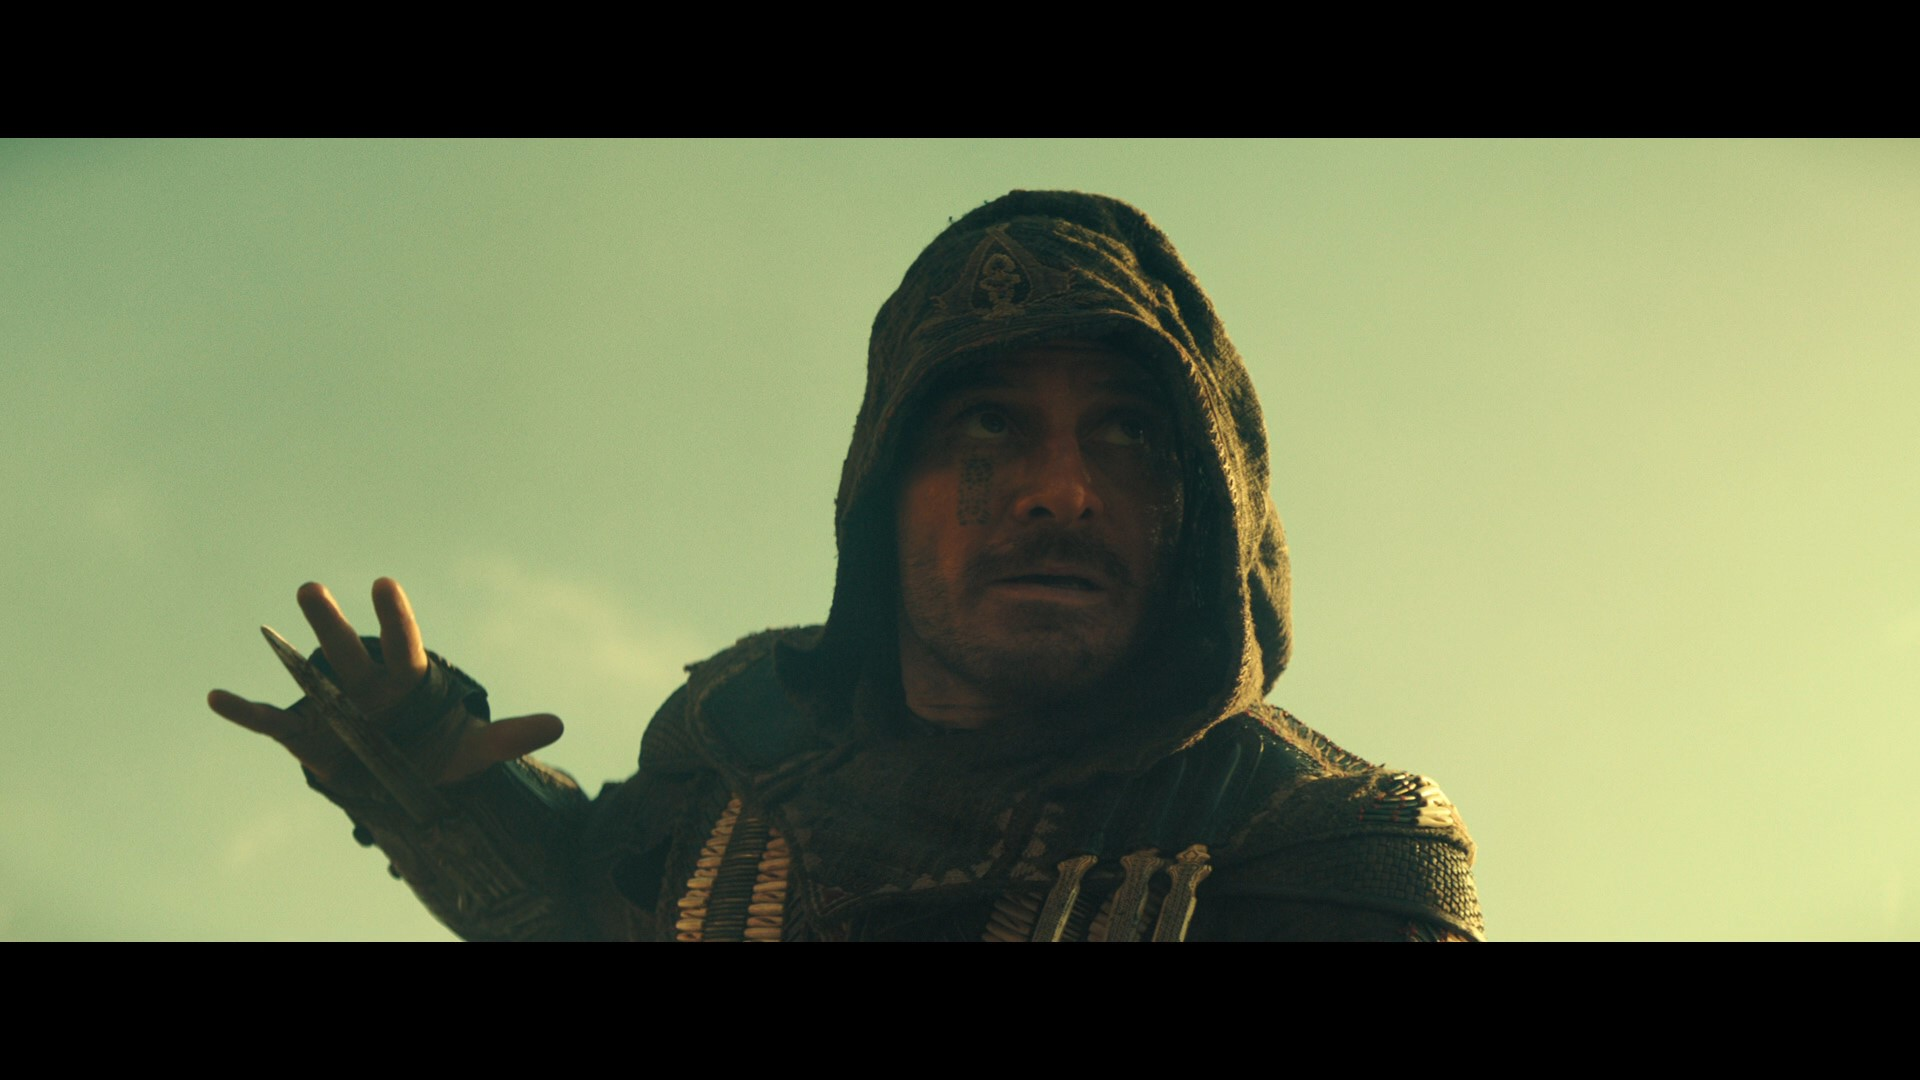 ASSASSIN'S CREED (2016) - Aguilar's (Michael Fassbender) SFX Wristblade - Image 14 of 17